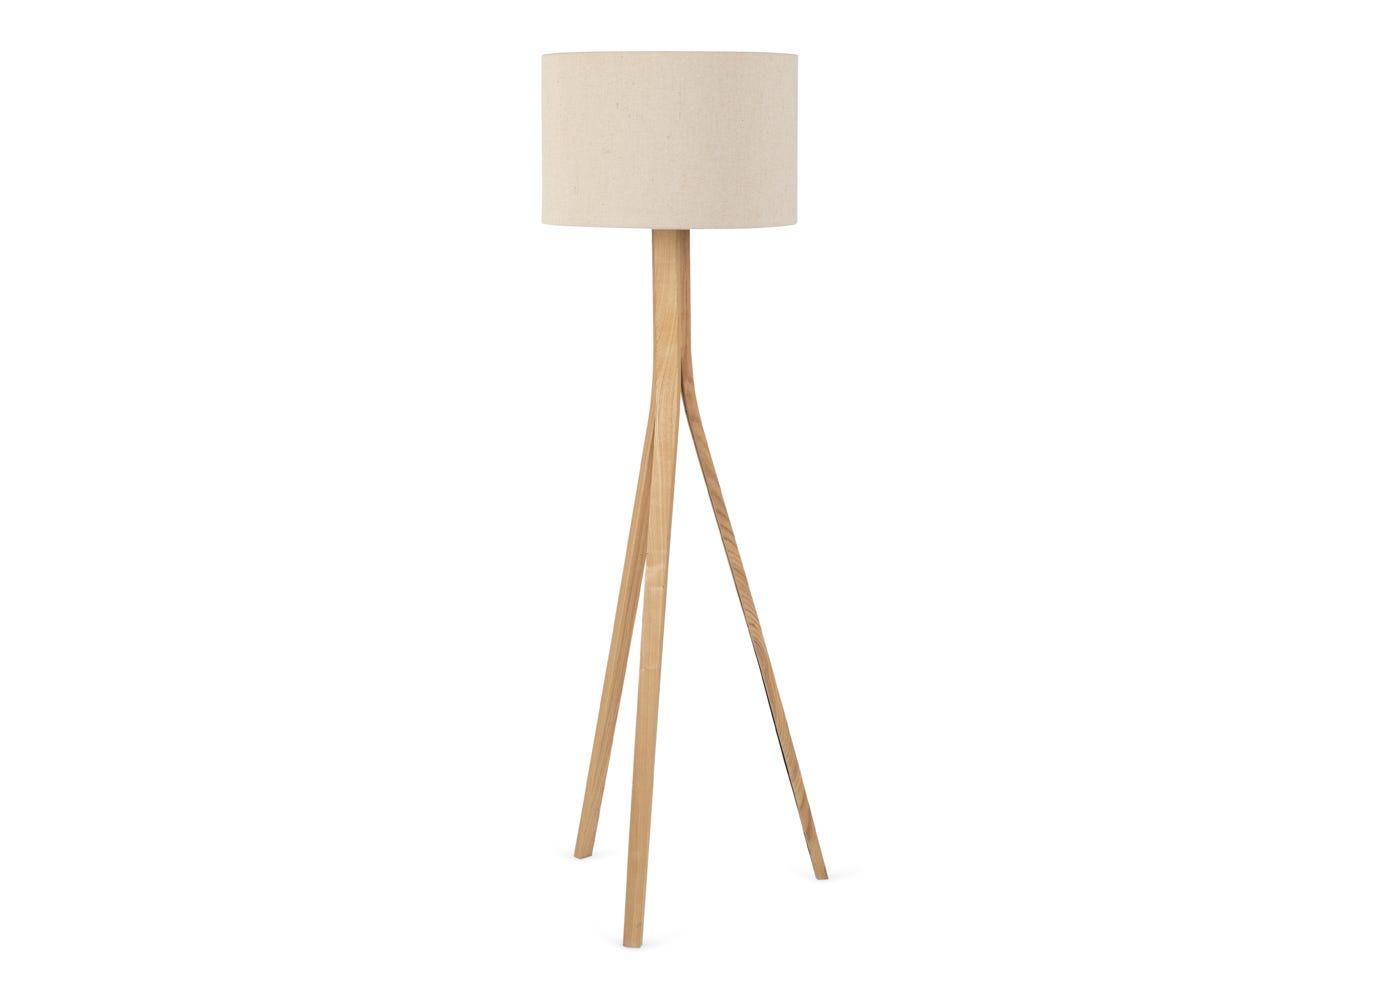 As shown: Baxter oak floor Lamp with Shade.